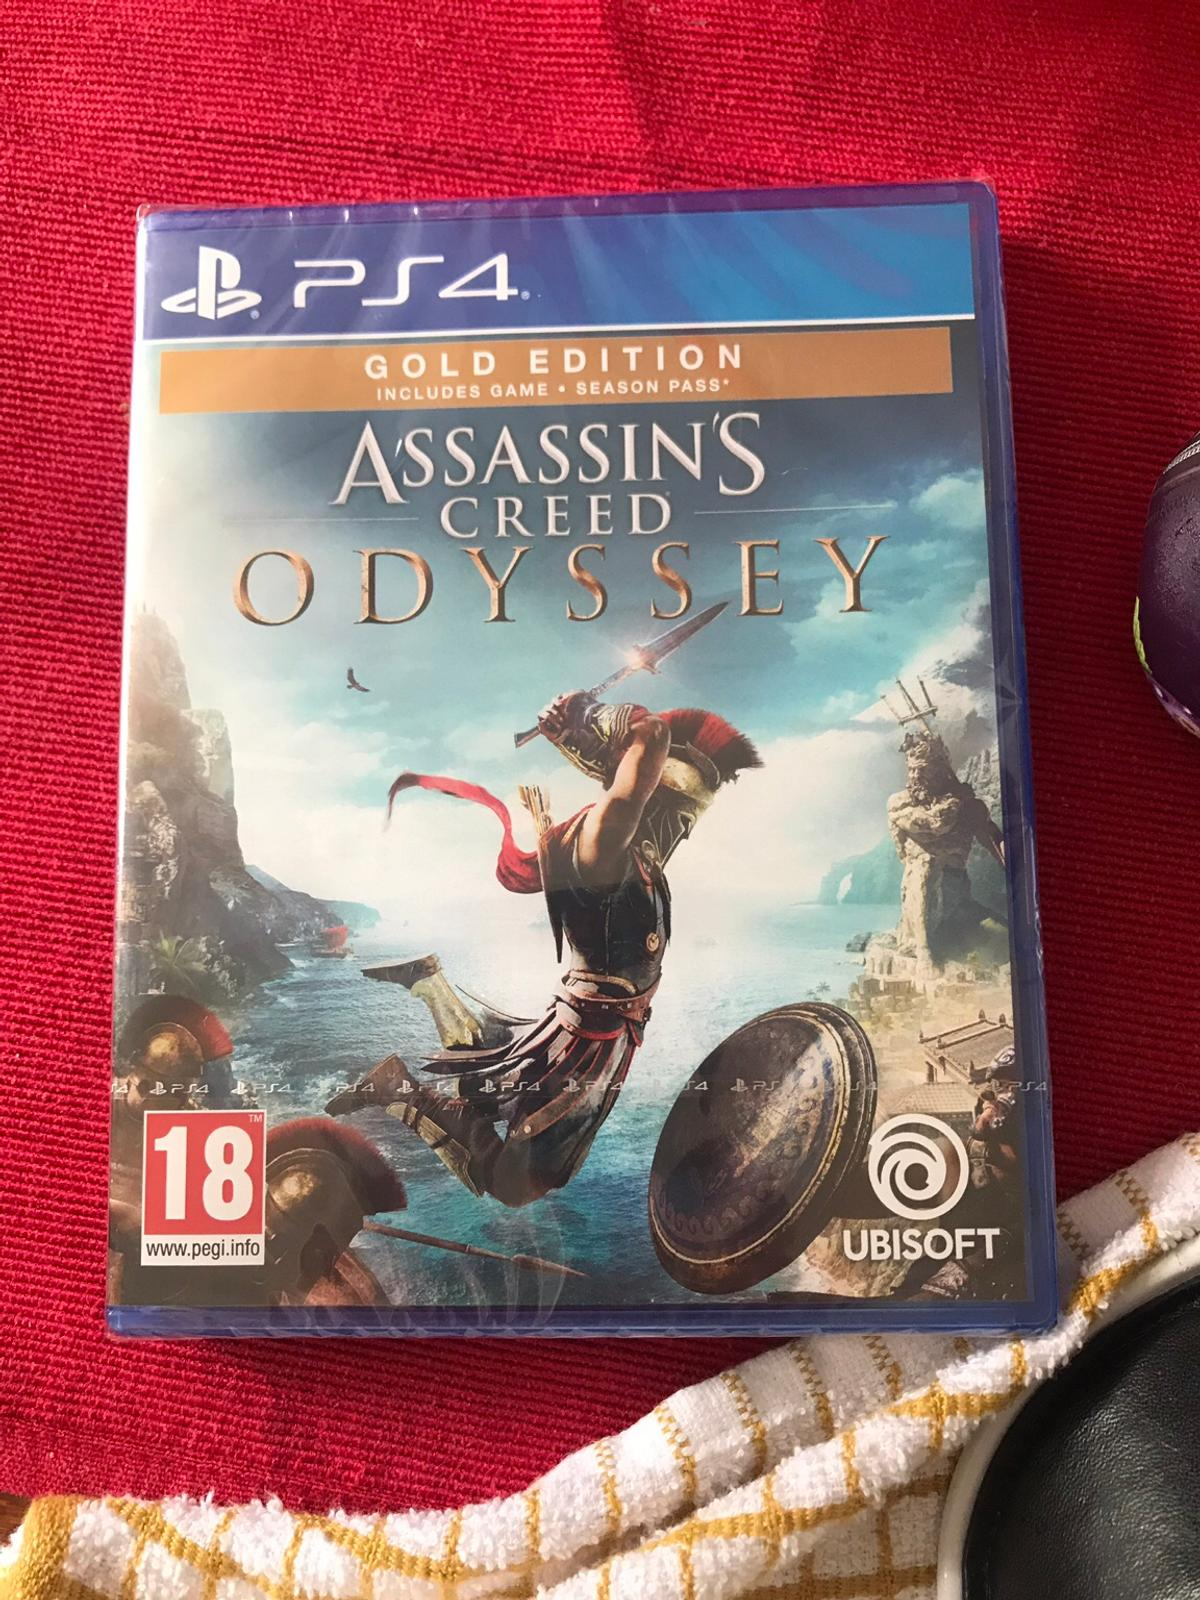 Assassins Creed Odyssey Ps4 Gold Edition In M26 Bury For 30 00